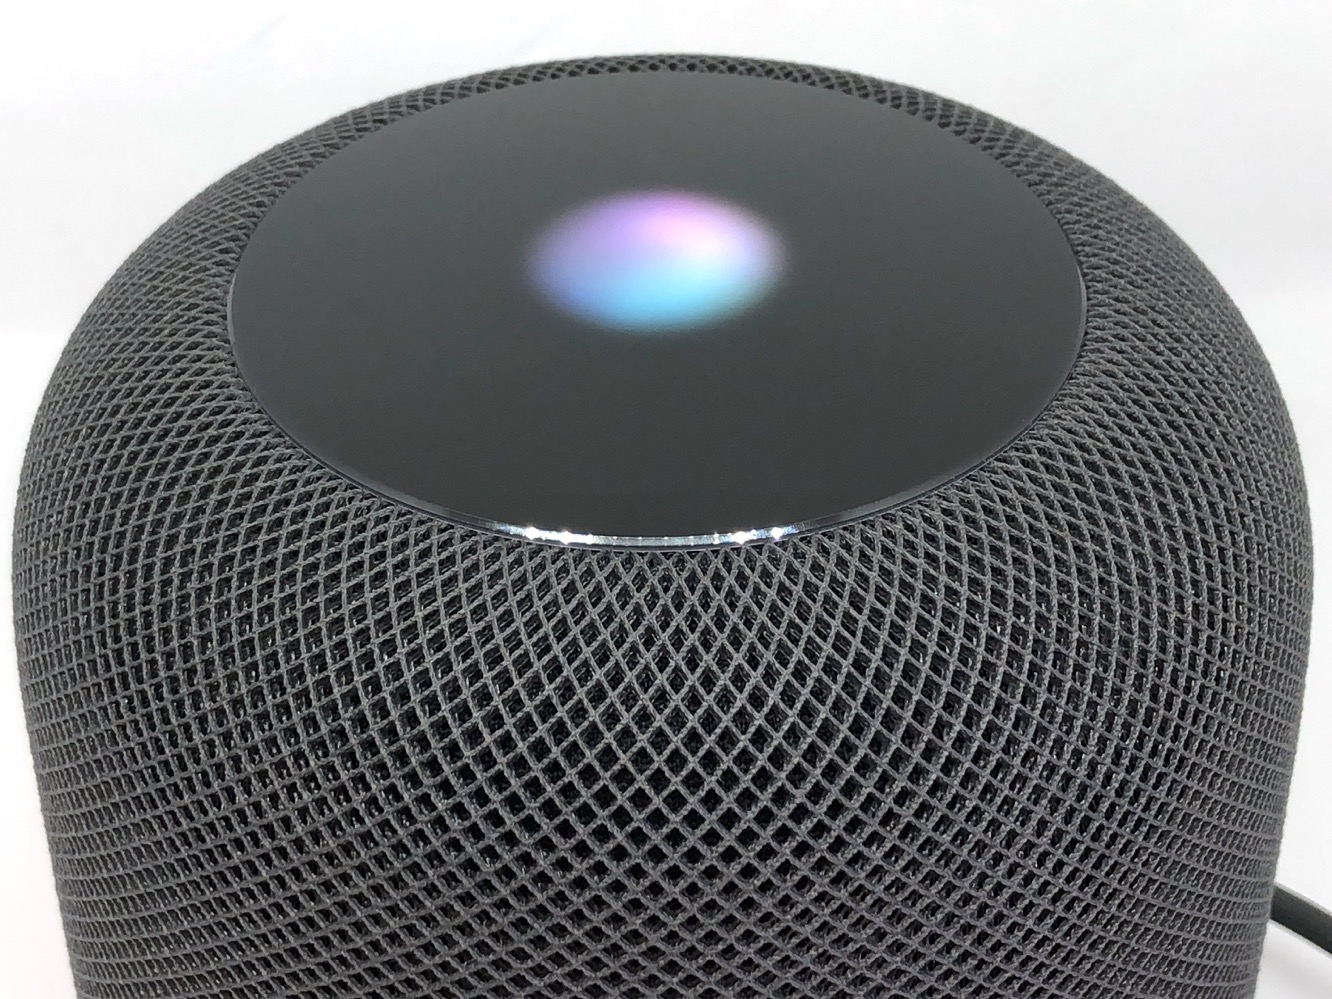 Report: HomePod OS 12 to add support for phone calls, multiple timers